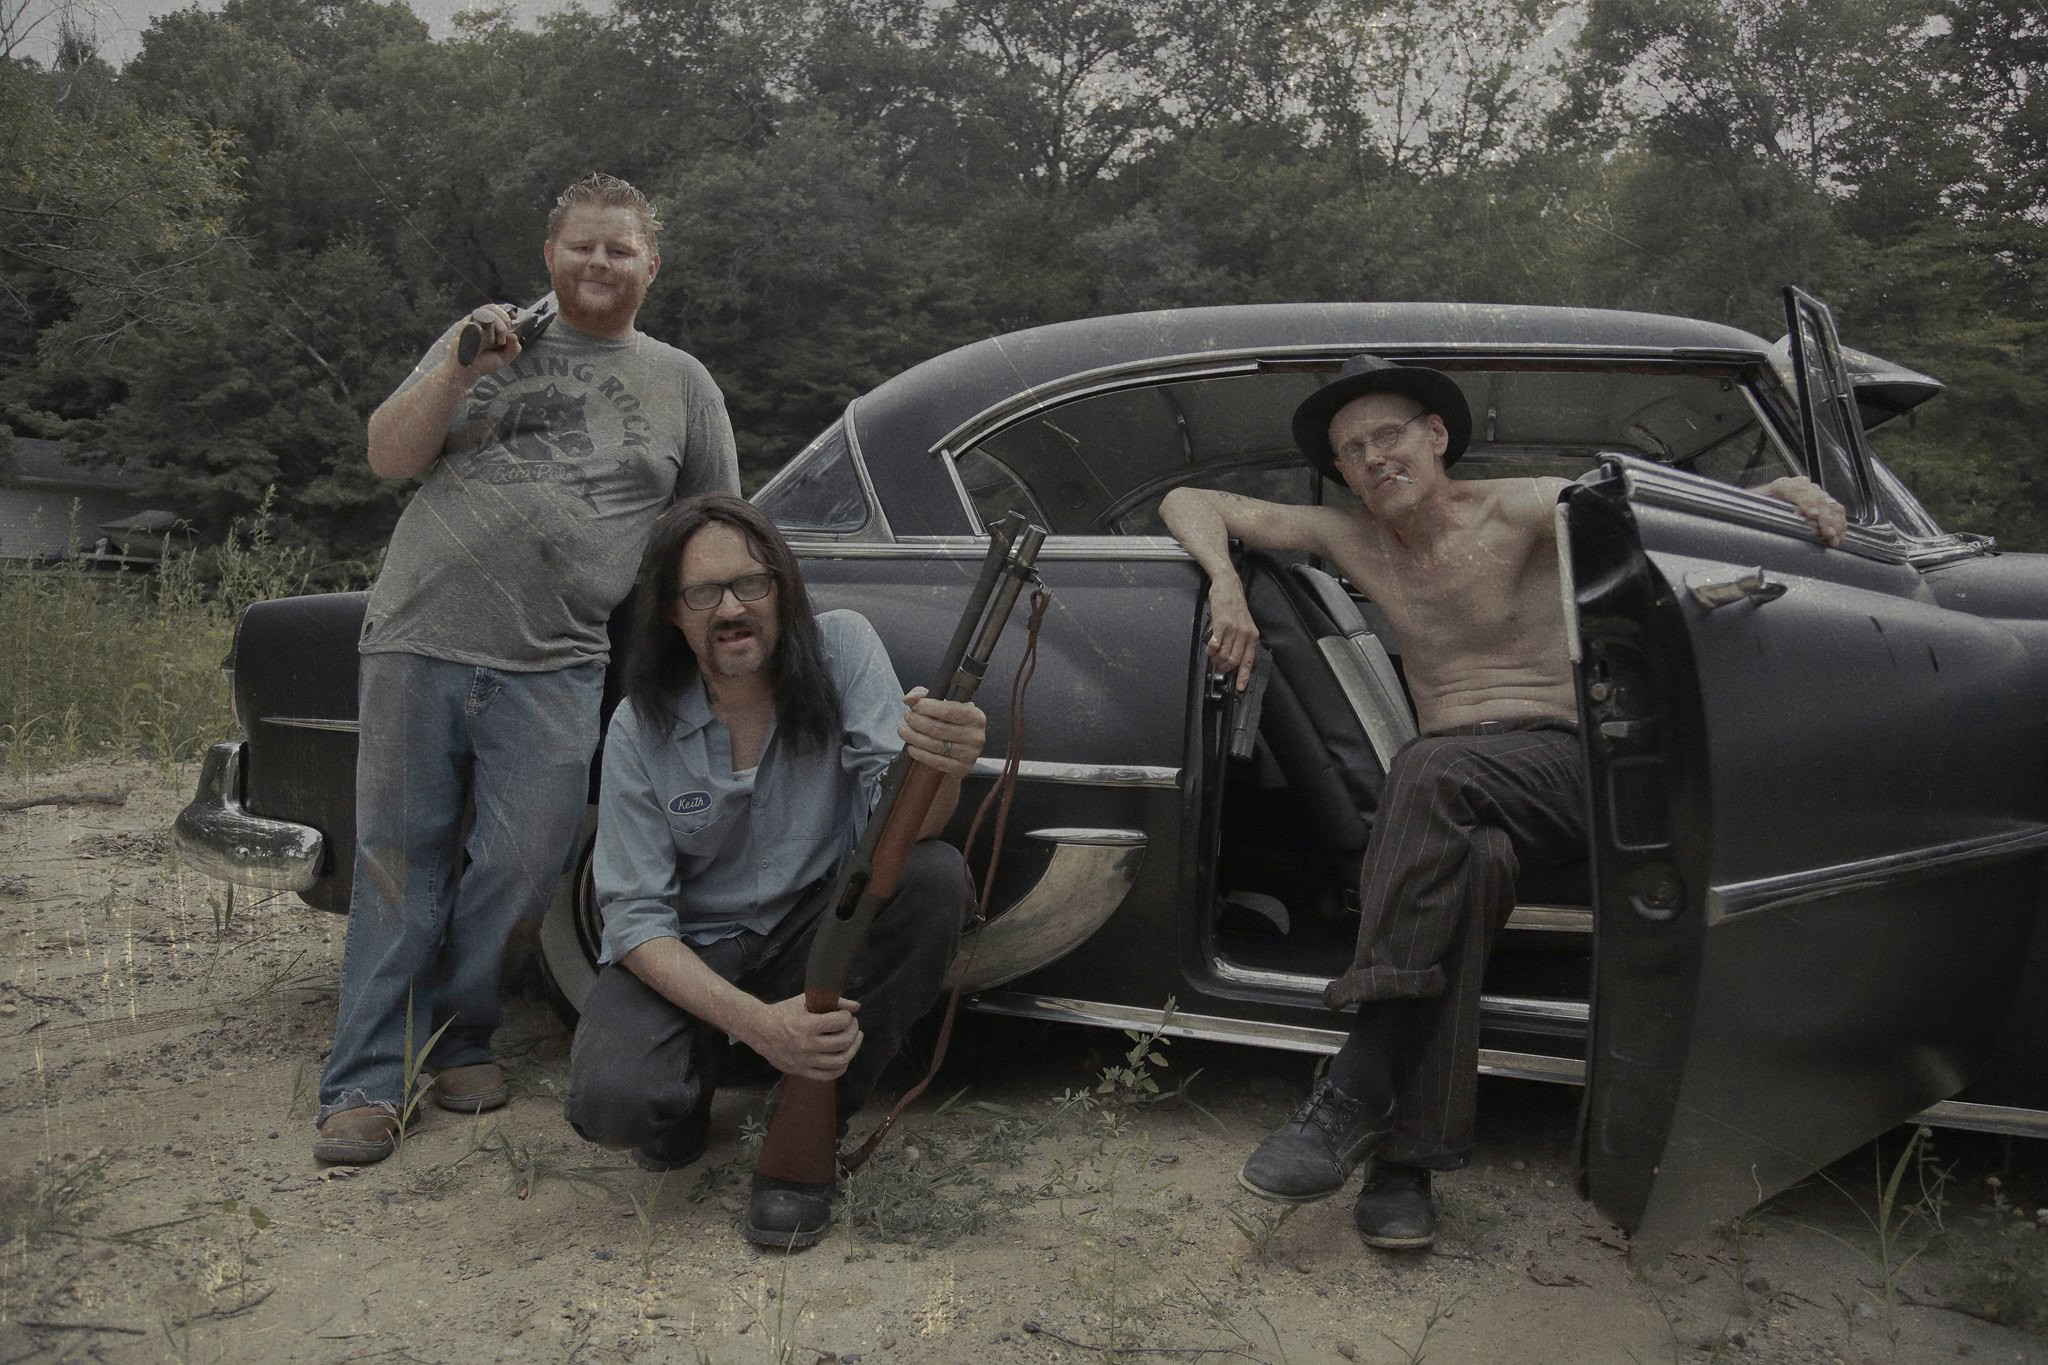 Photo of three men with guns lounging by the side of a car.